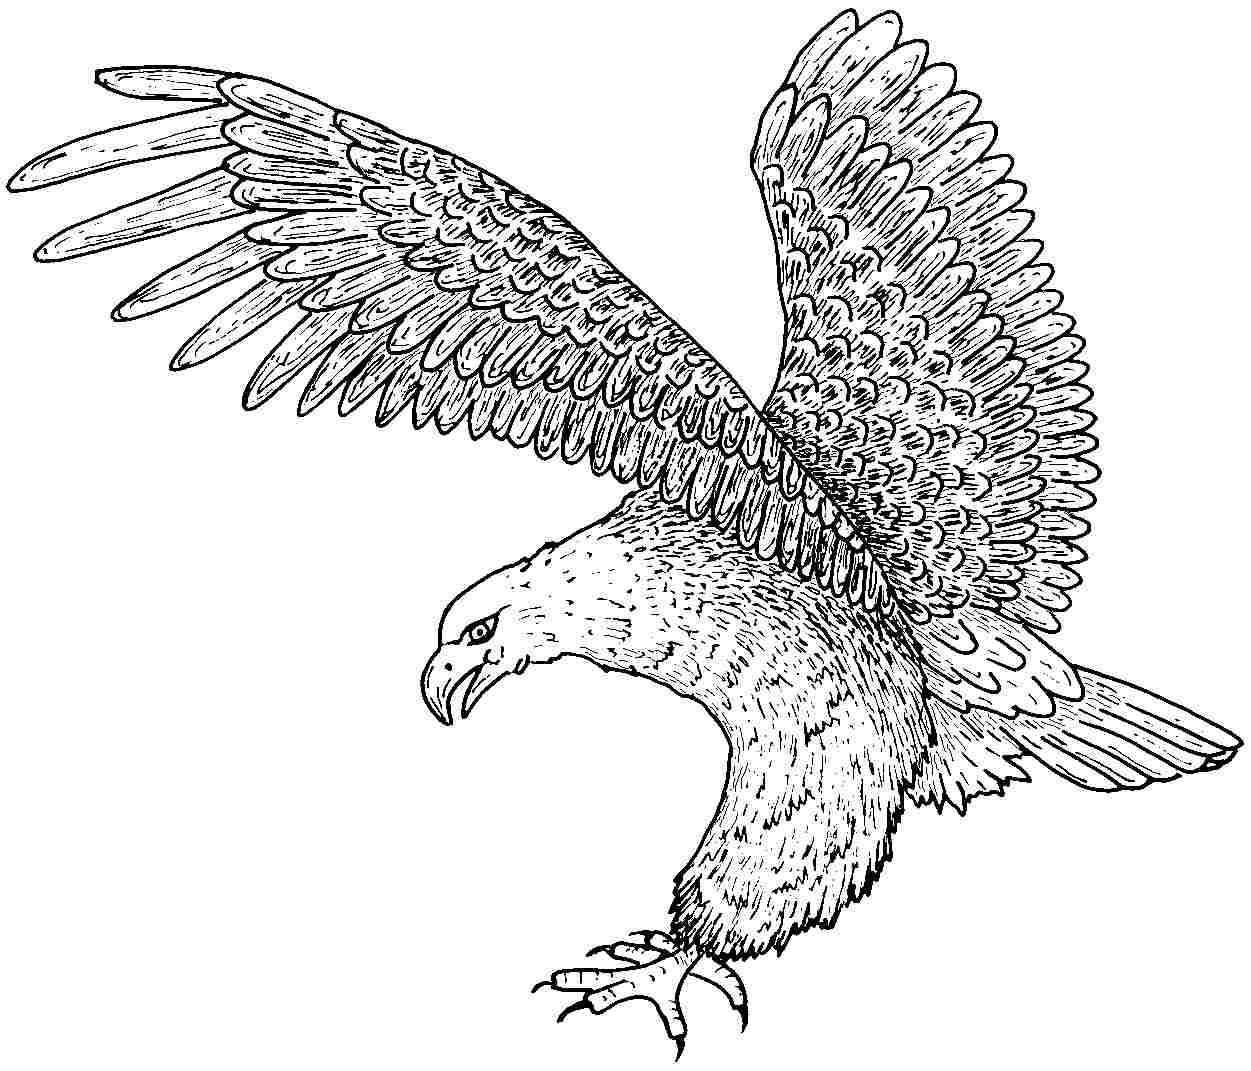 birds of prey coloring pages bird of prey coloring download bird of prey coloring for pages birds prey of coloring